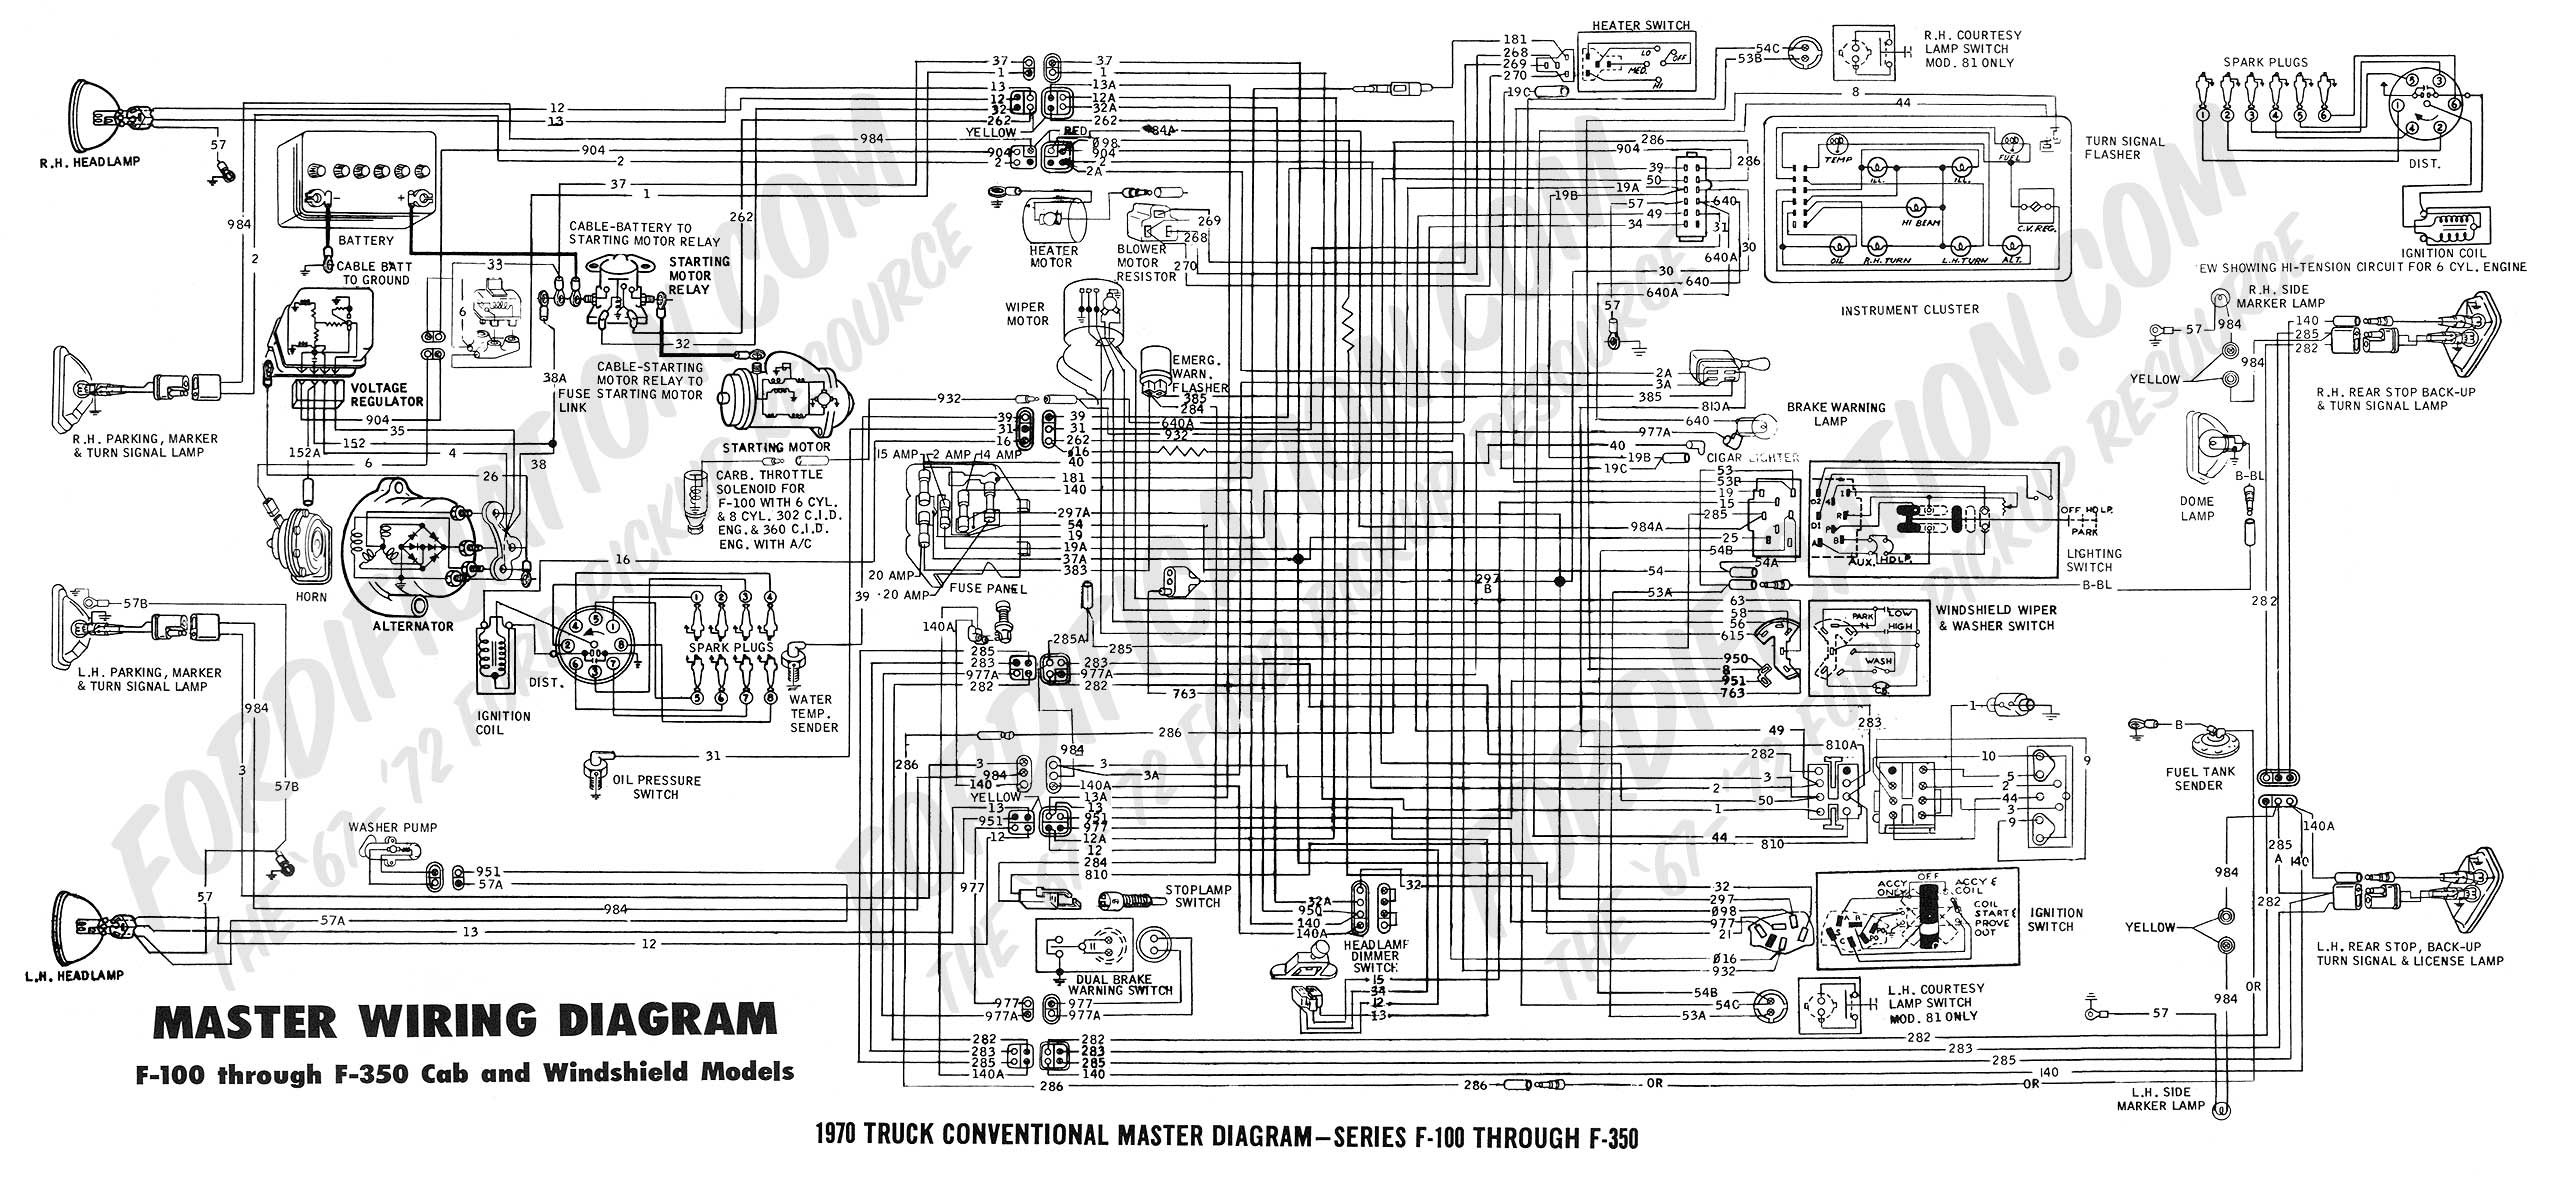 1994 Toyota Pickup Wiring Schematic Diagram 94 Stereo 1980 Ford F 250 Diagrams U2022 Rh Arcomics Co Radio